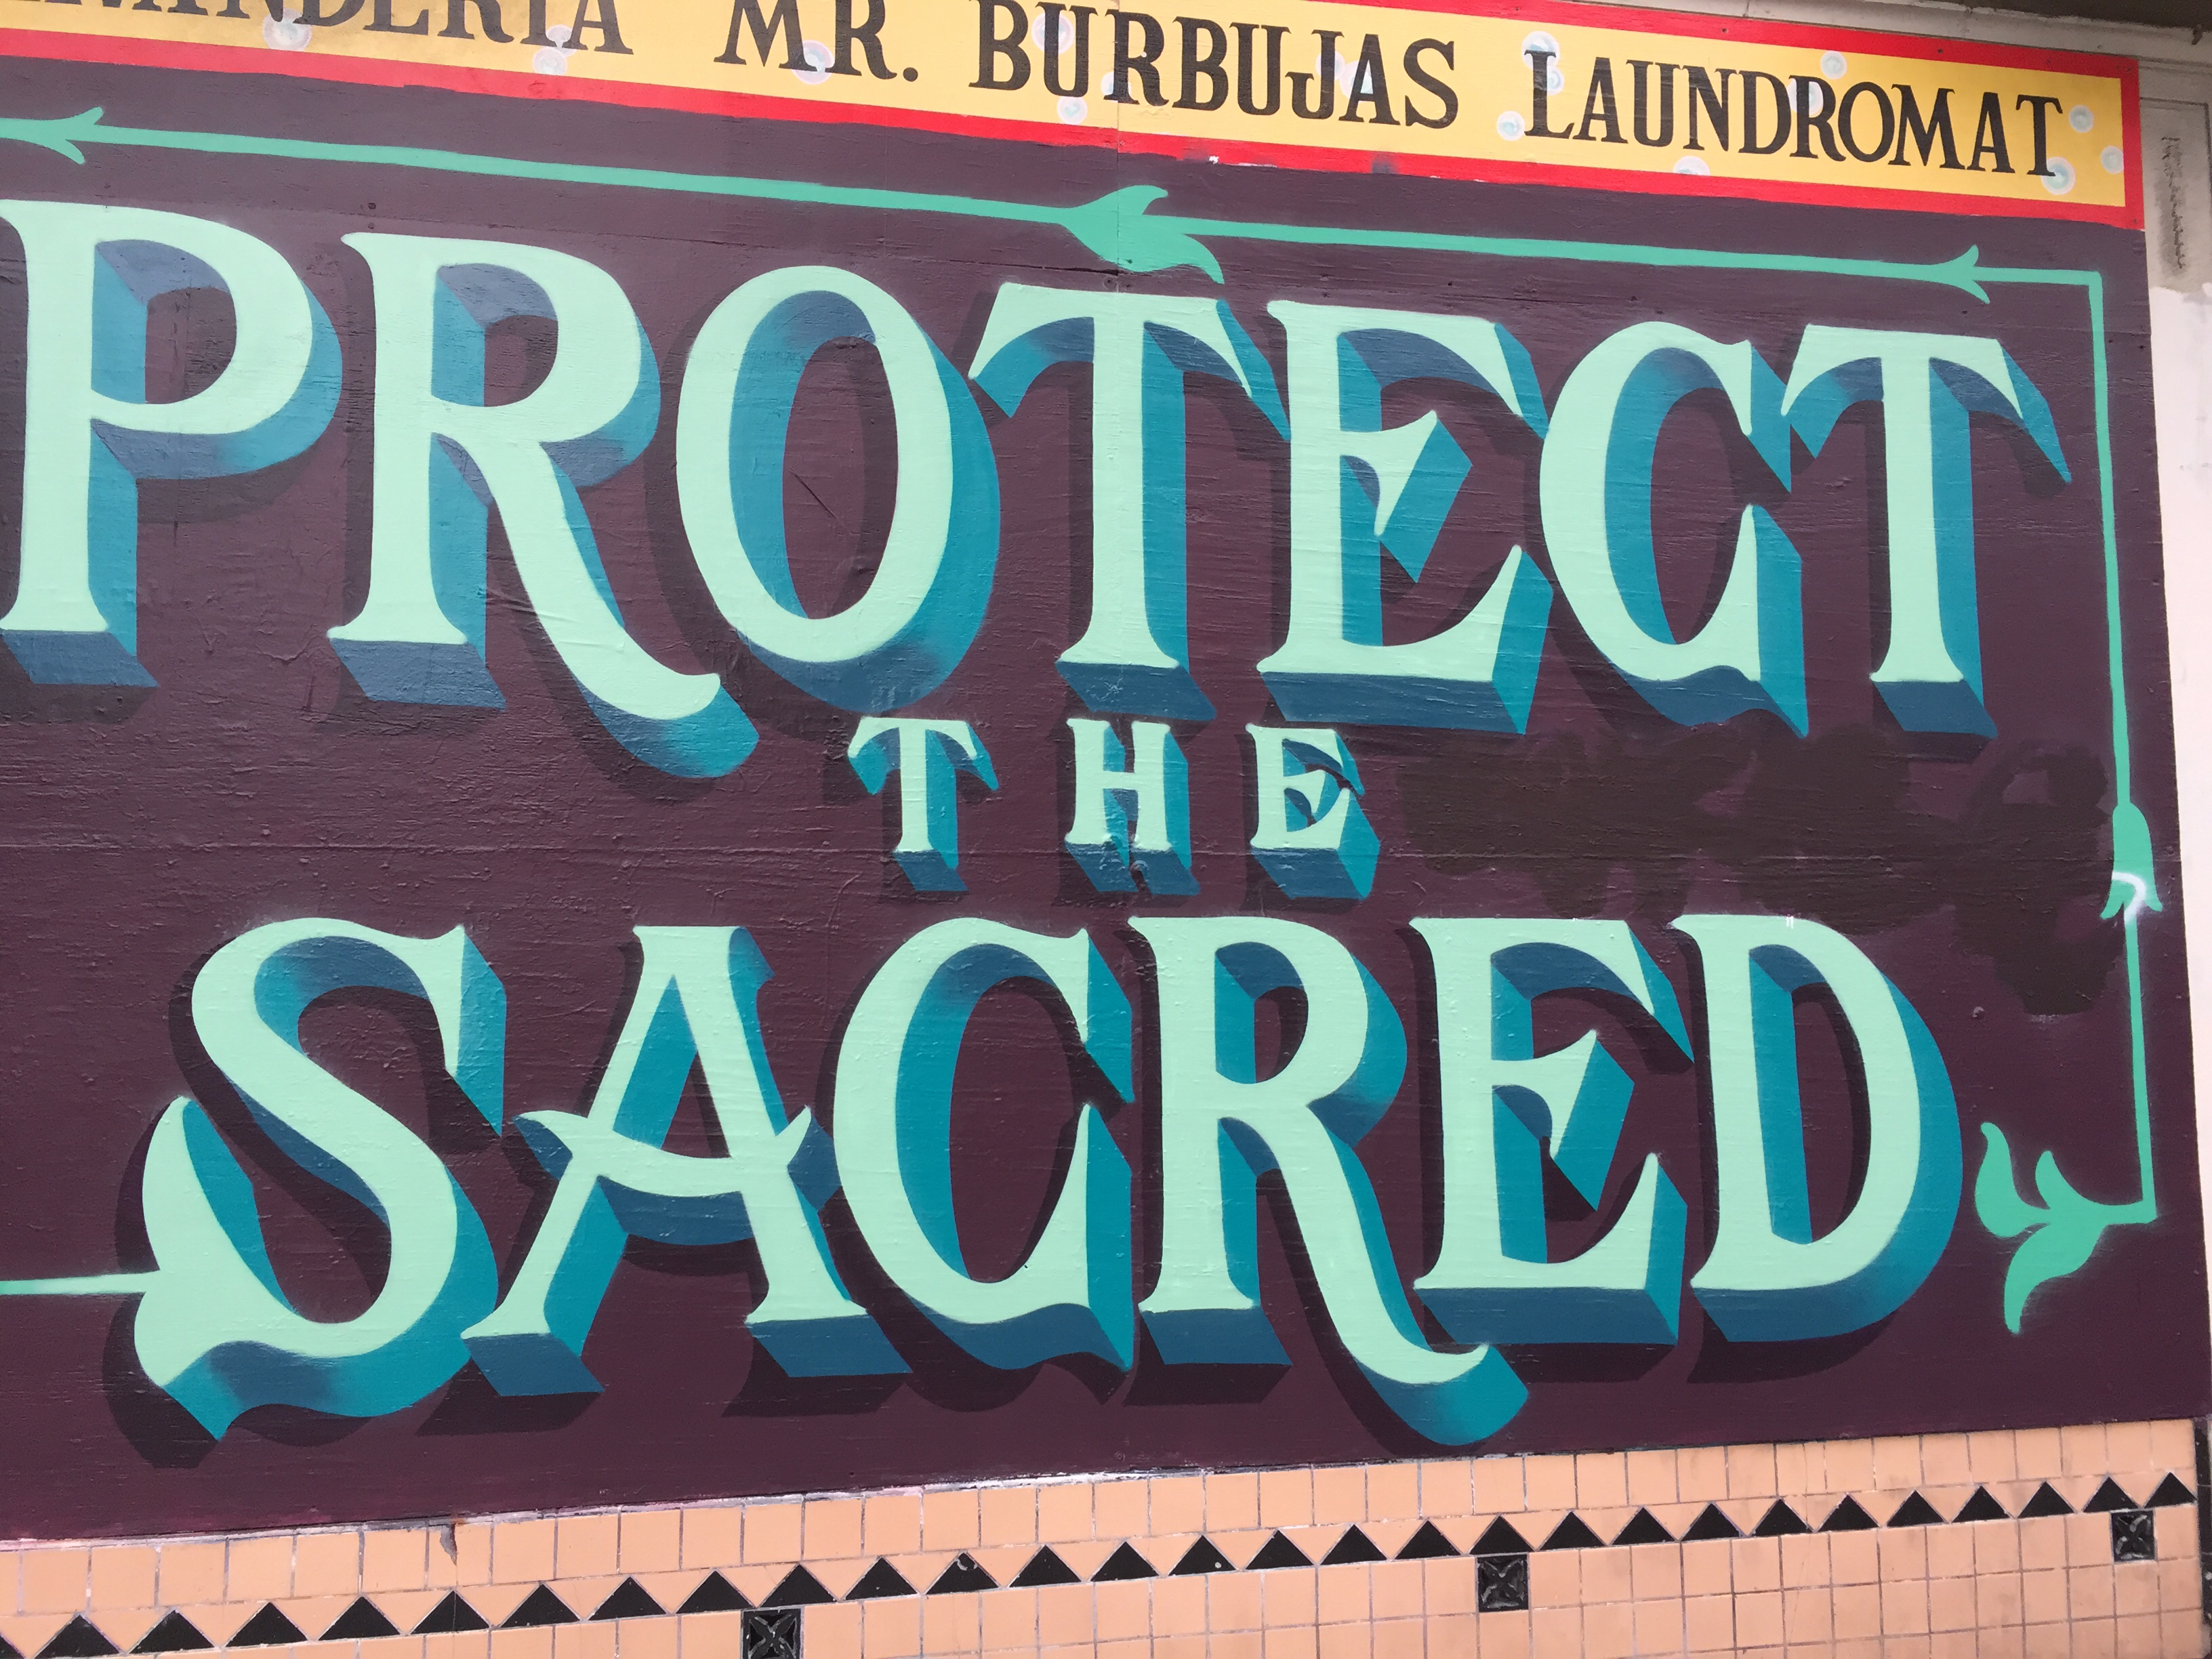 Protect the Sacred type mural with Mr. Burbujas sign painted above